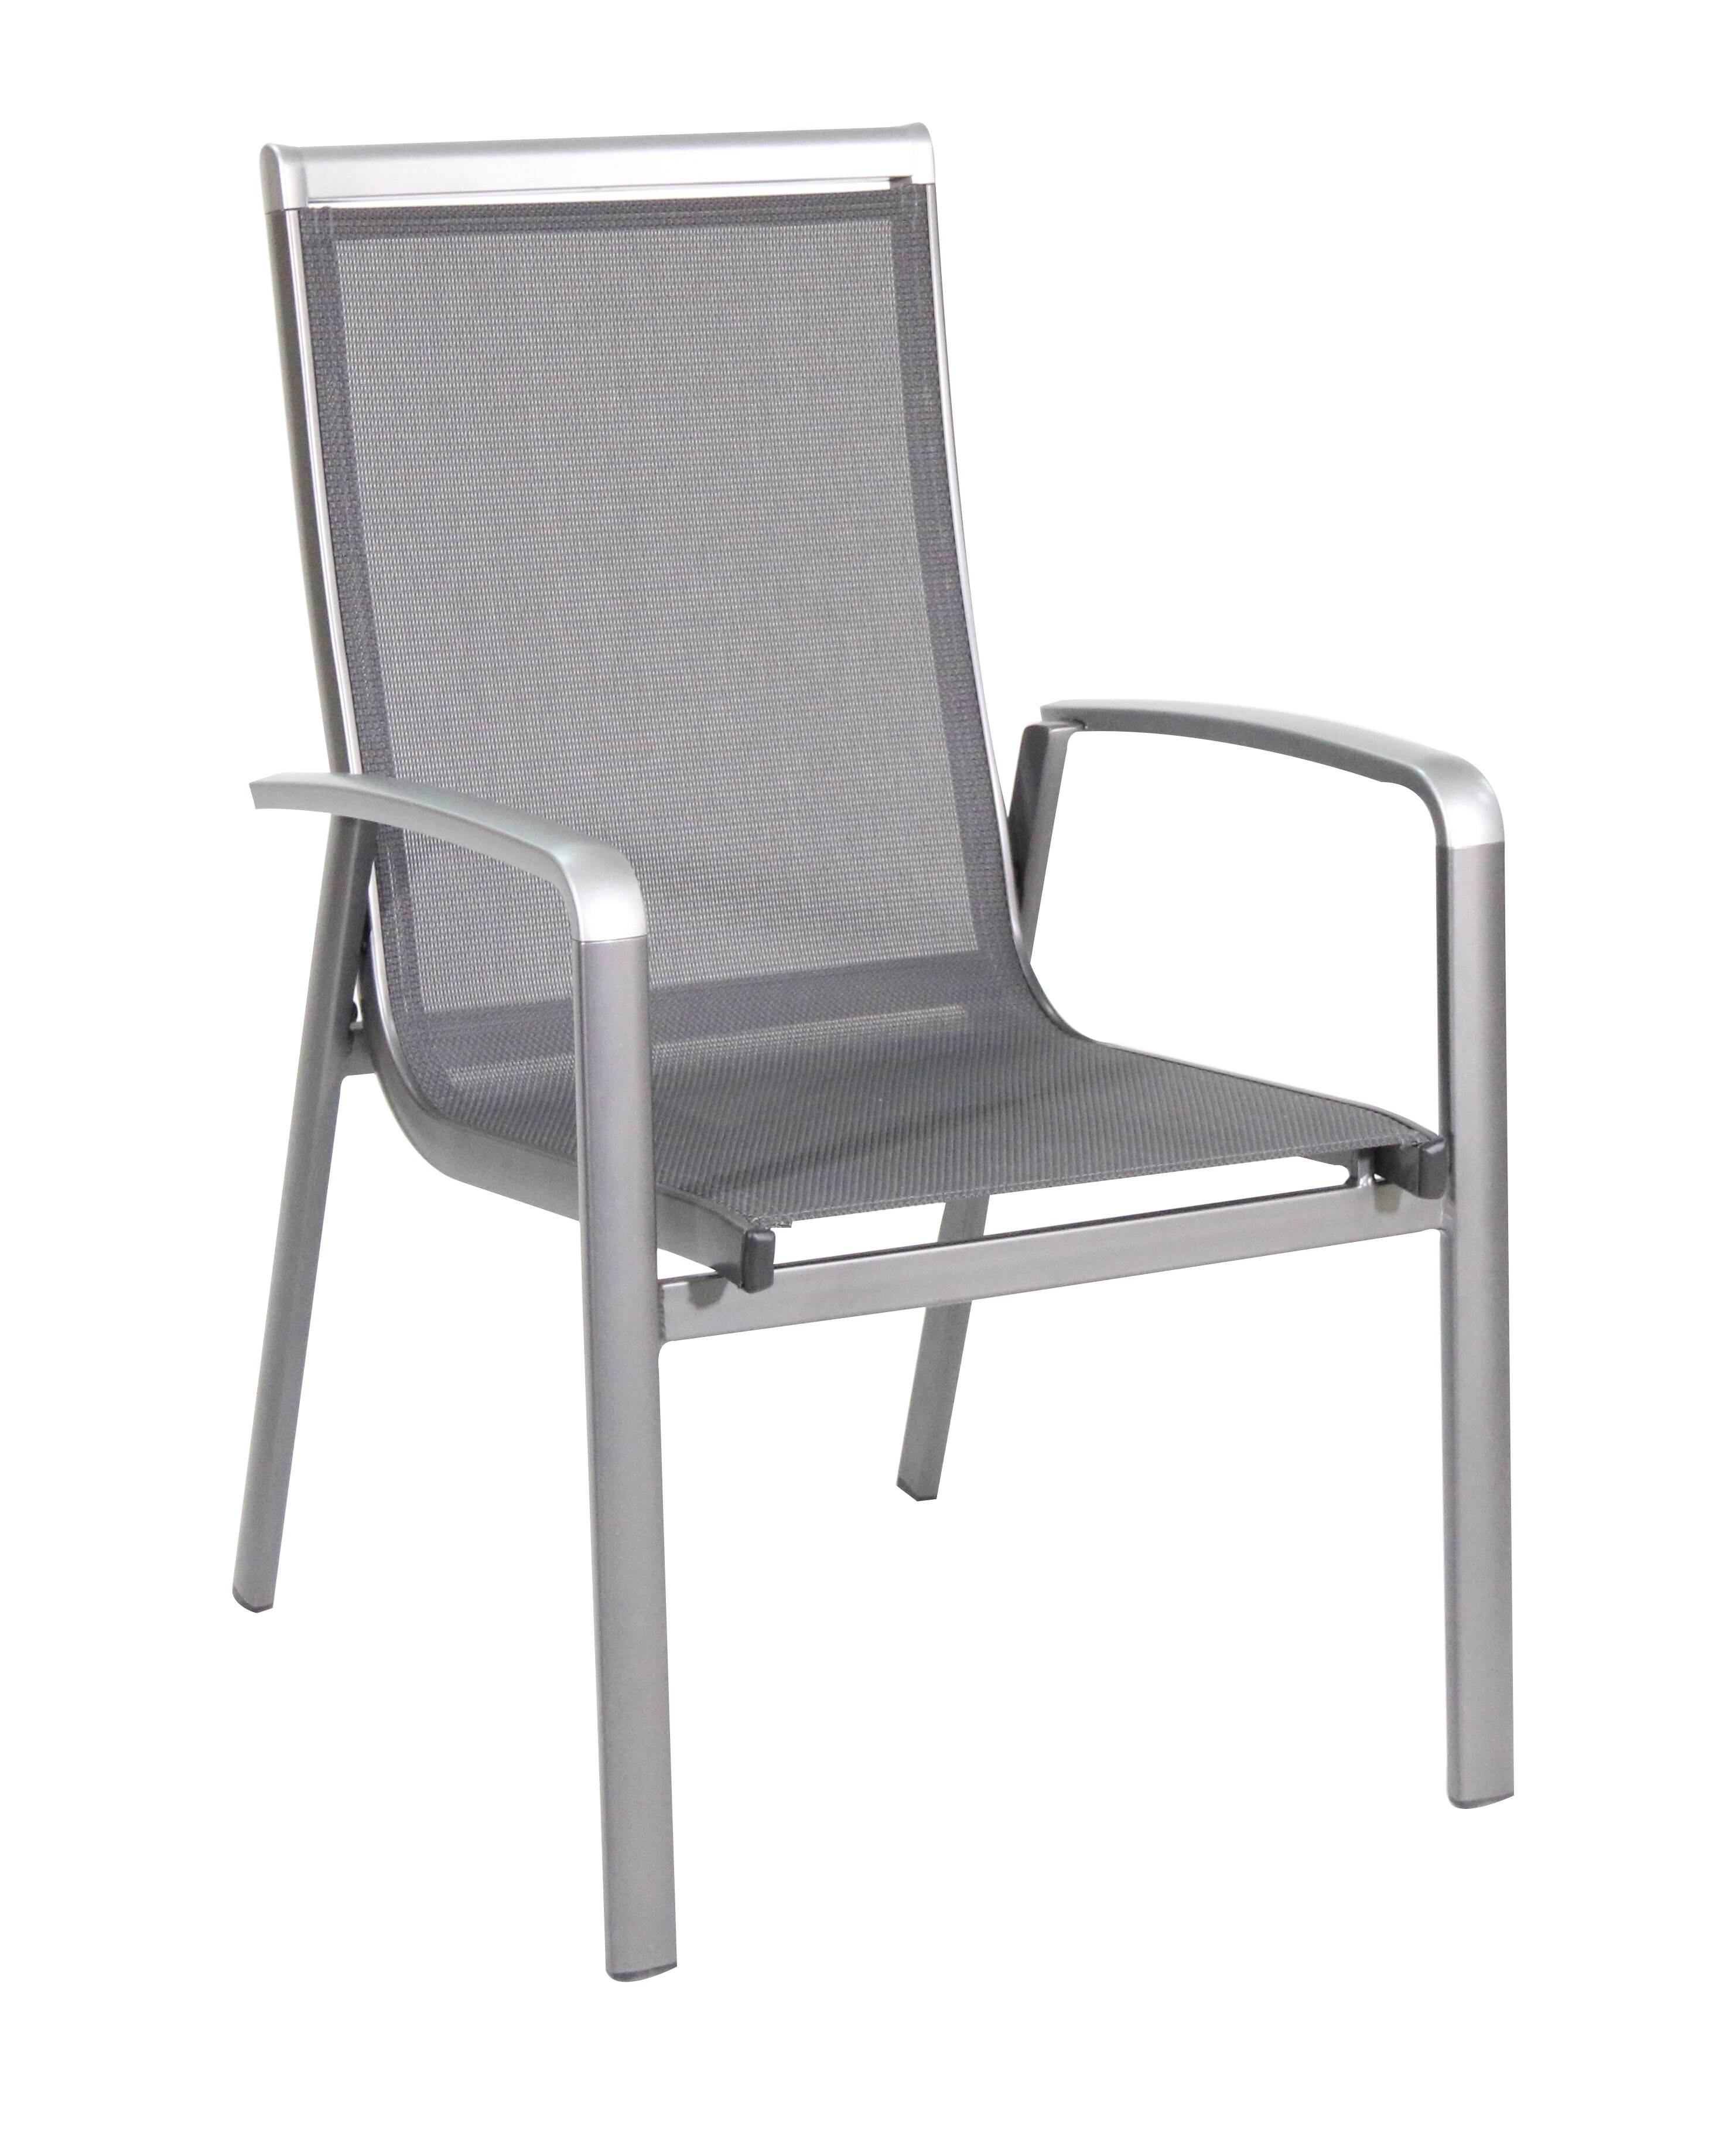 Royal Garden Brisy Folding Patio Dining Chair & Reviews